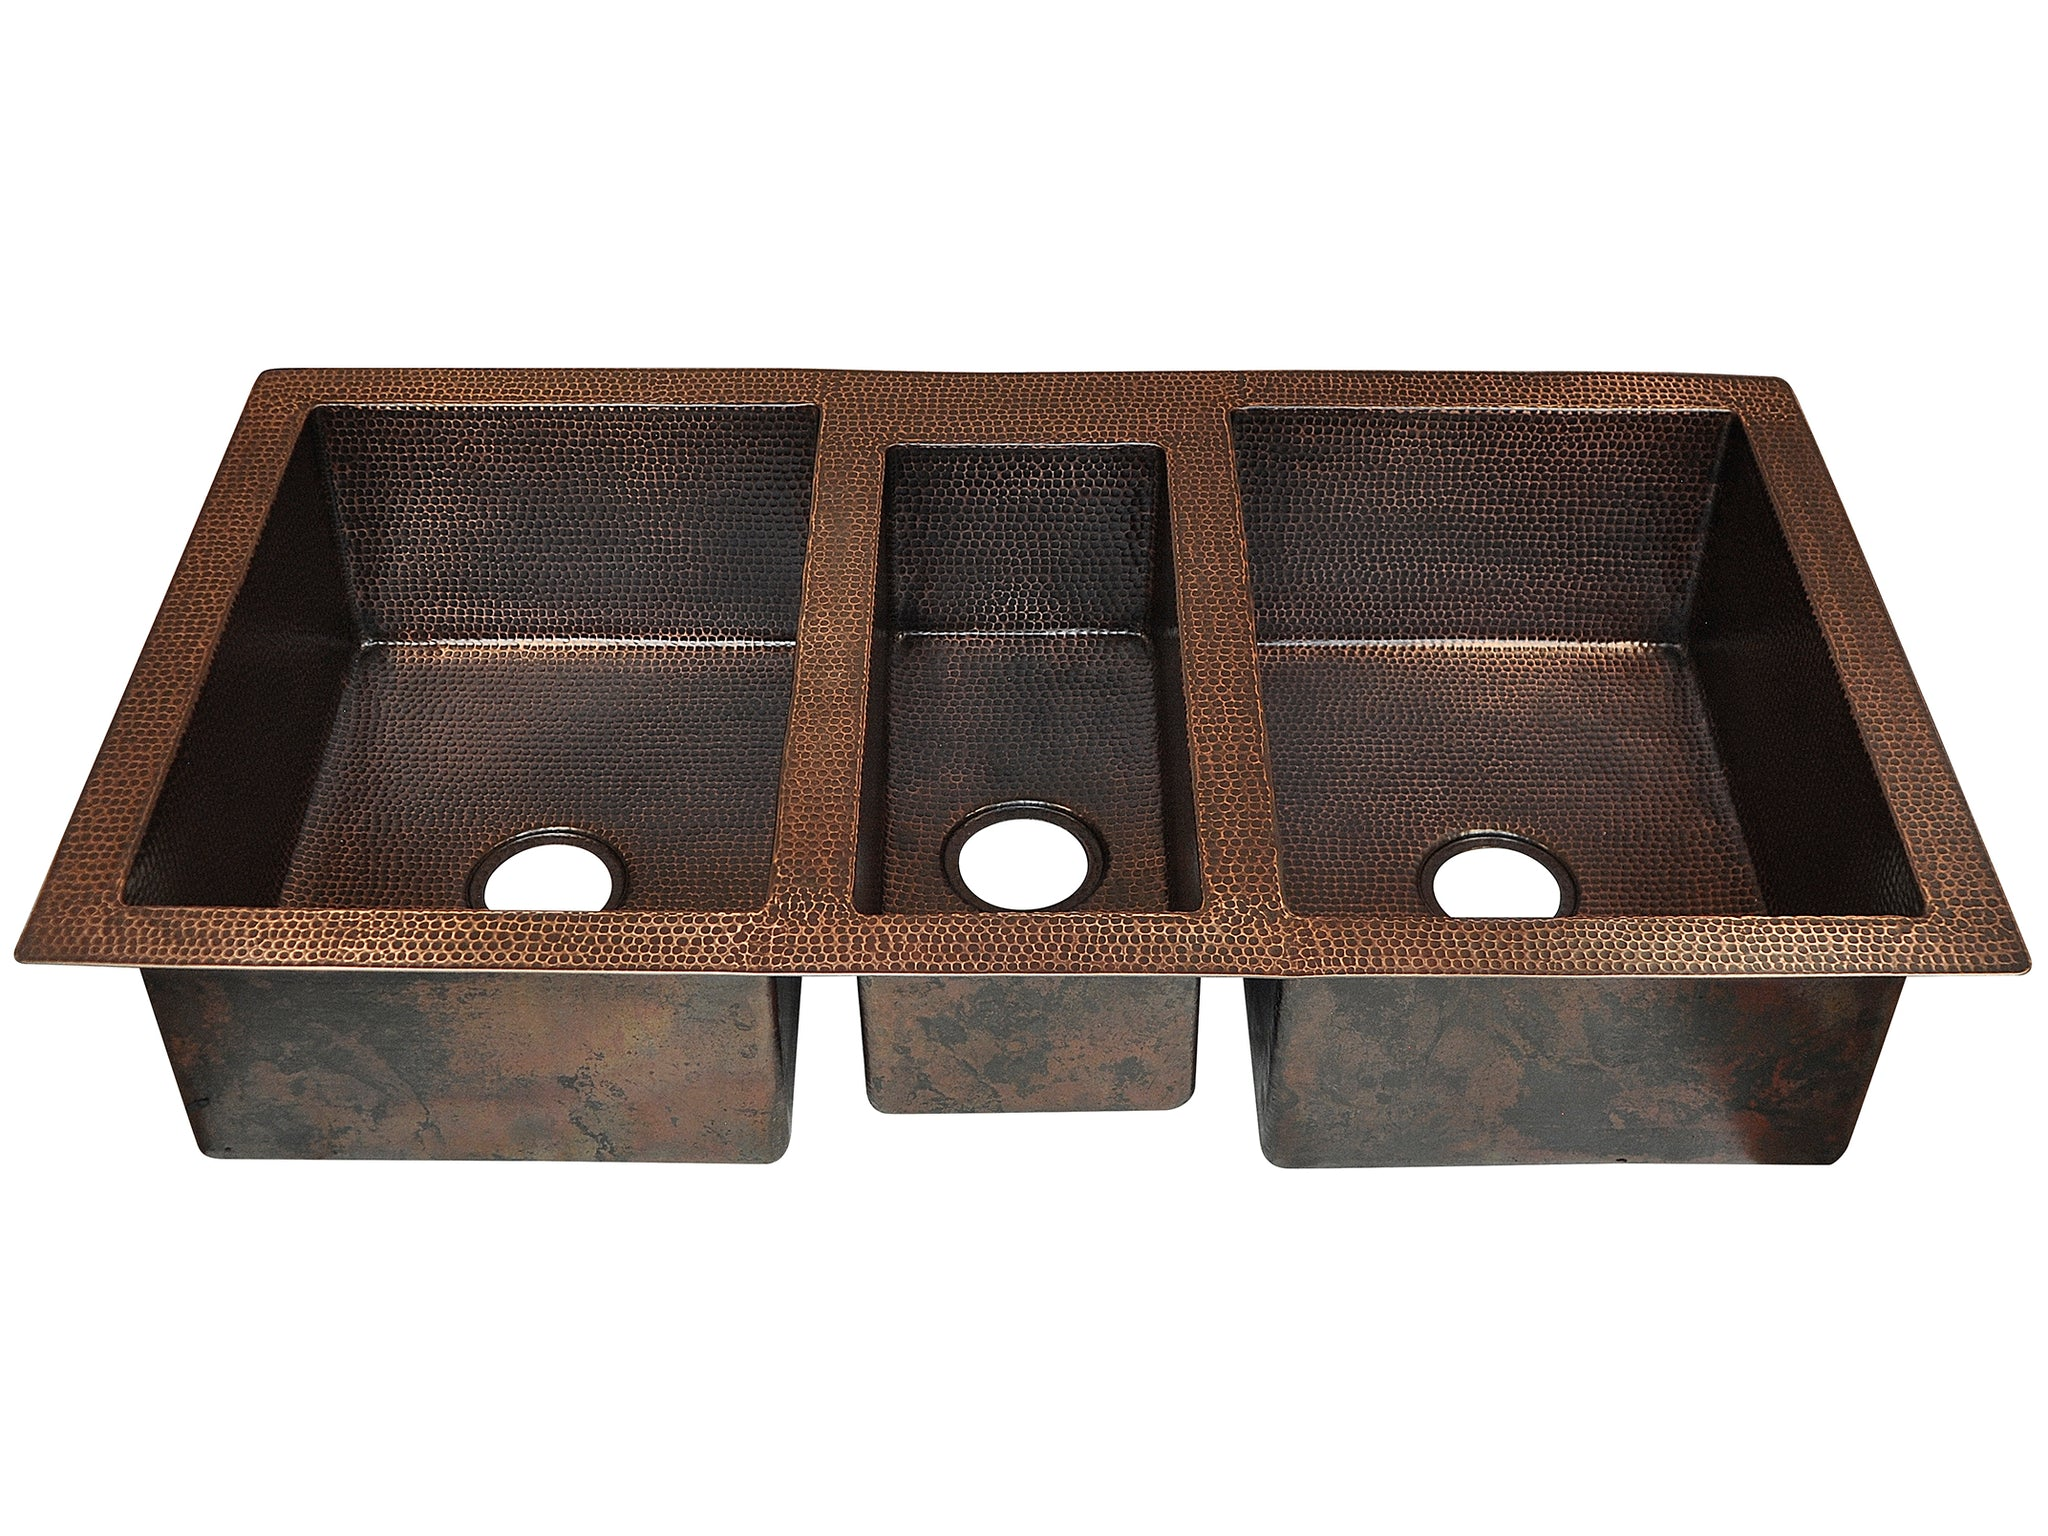 Undermount Triple Bowl Copper Kitchen Sink